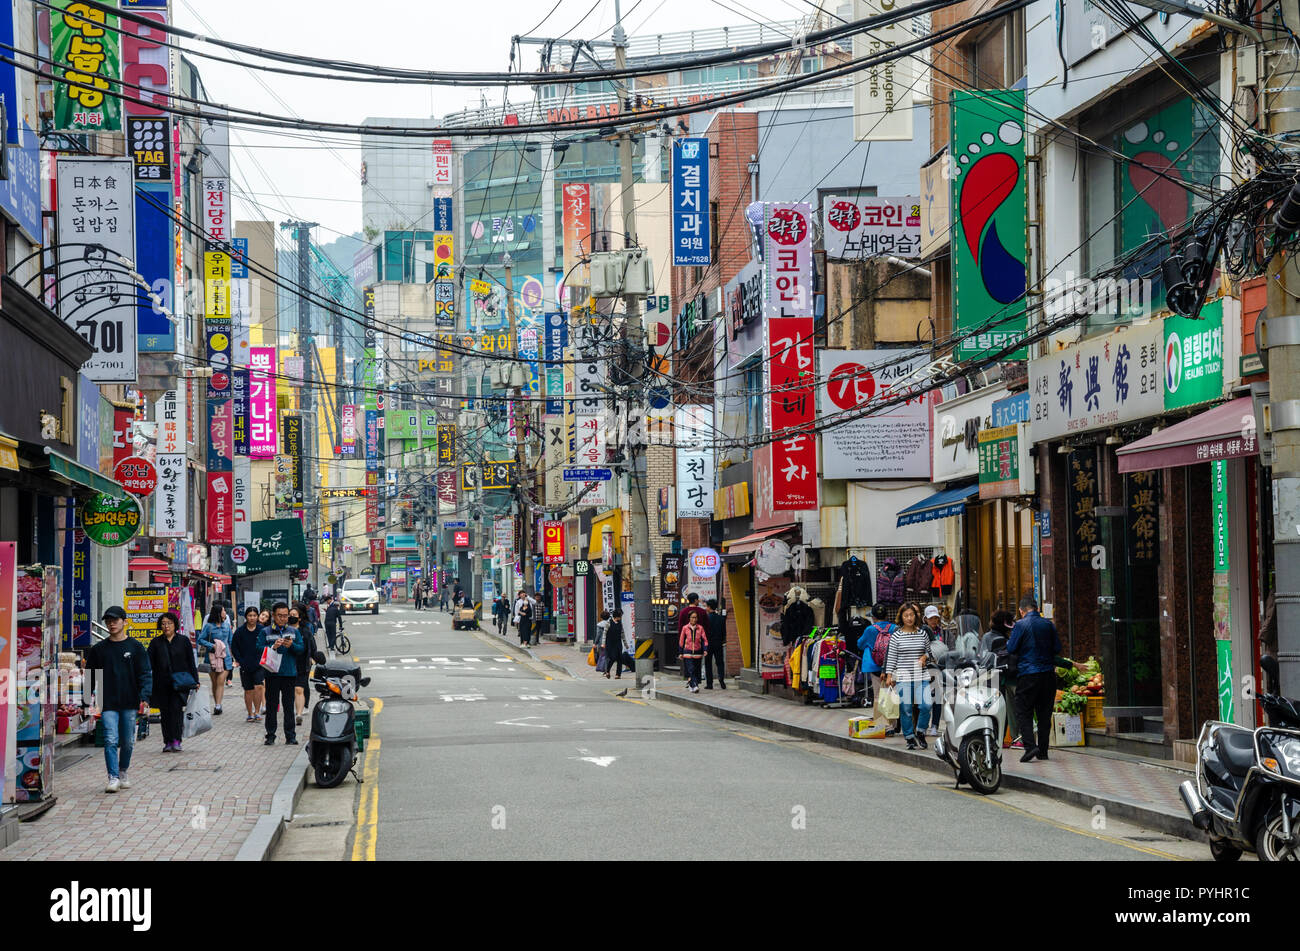 A street with many shops in Haeundae, Busan, South Korea. Overhead power cables criss-cross the street. - Stock Image